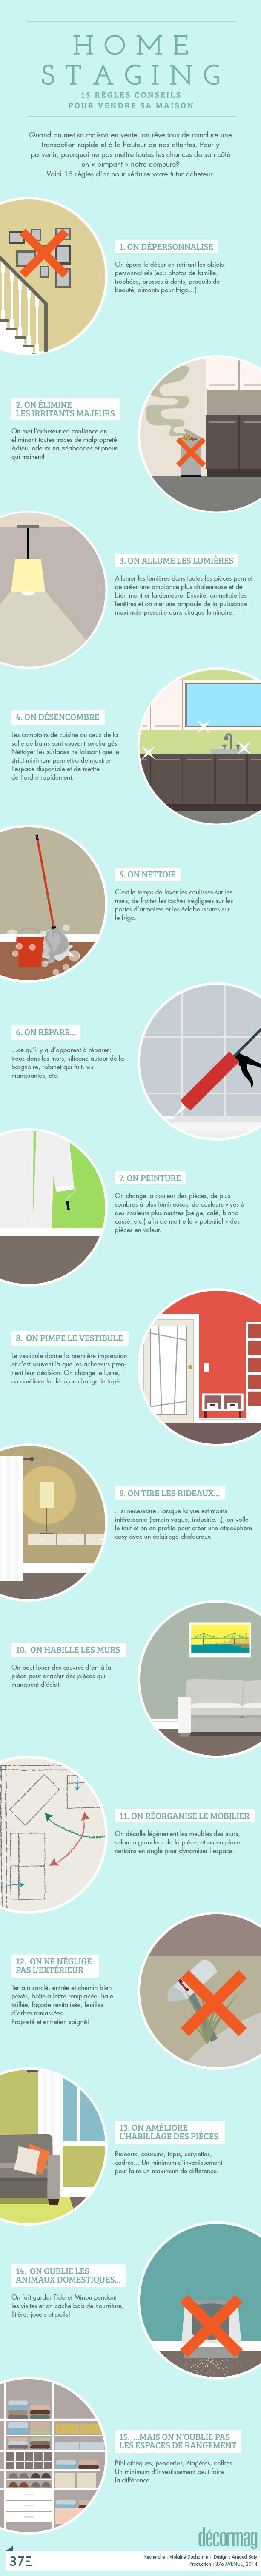 [Infographie] Home Staging   Décormag